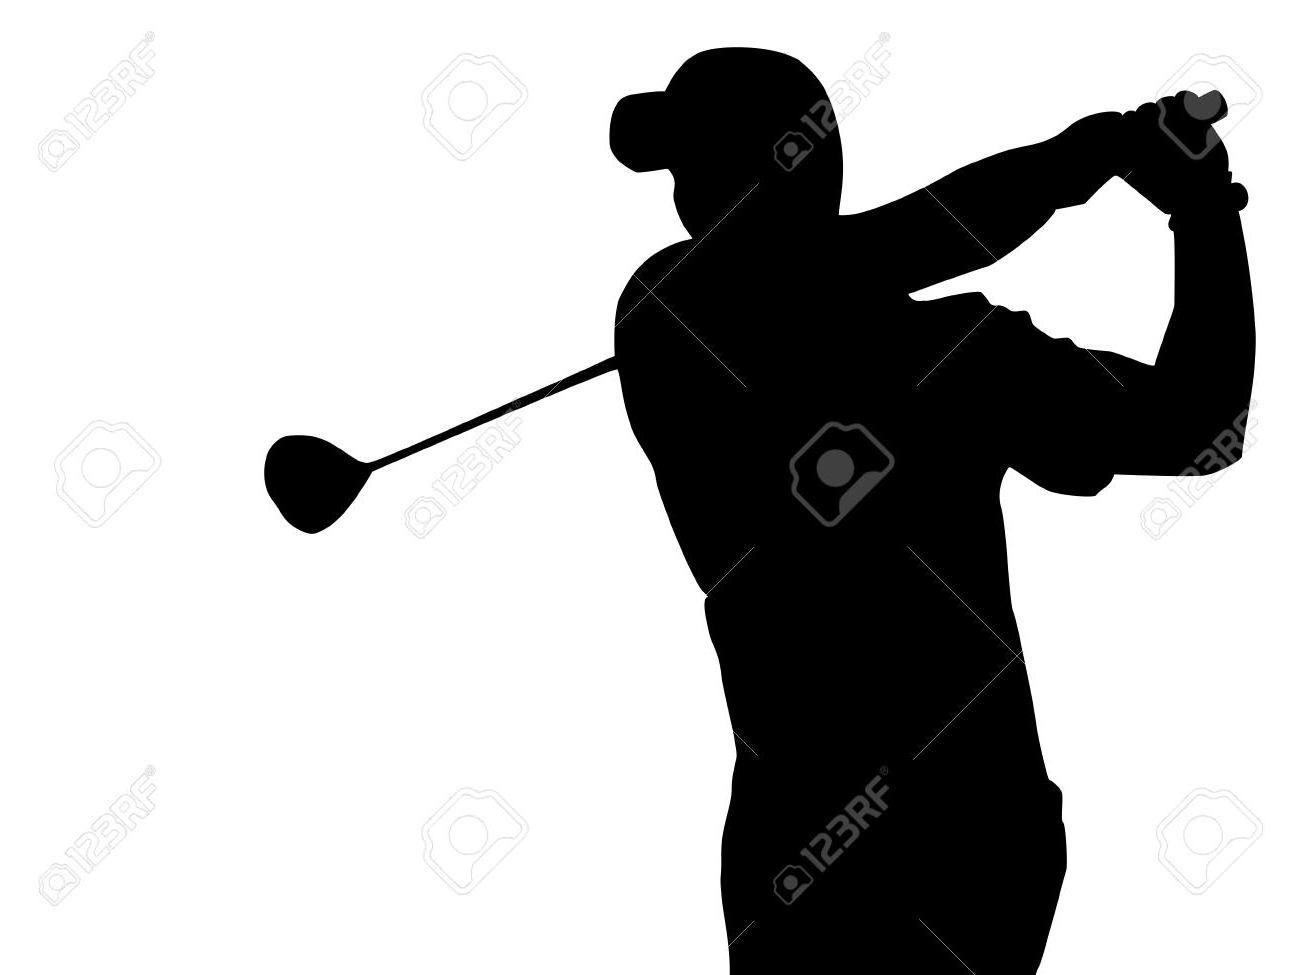 1300x975 Best Golf Silhouette Vector Pictures Free Vector Art, Images